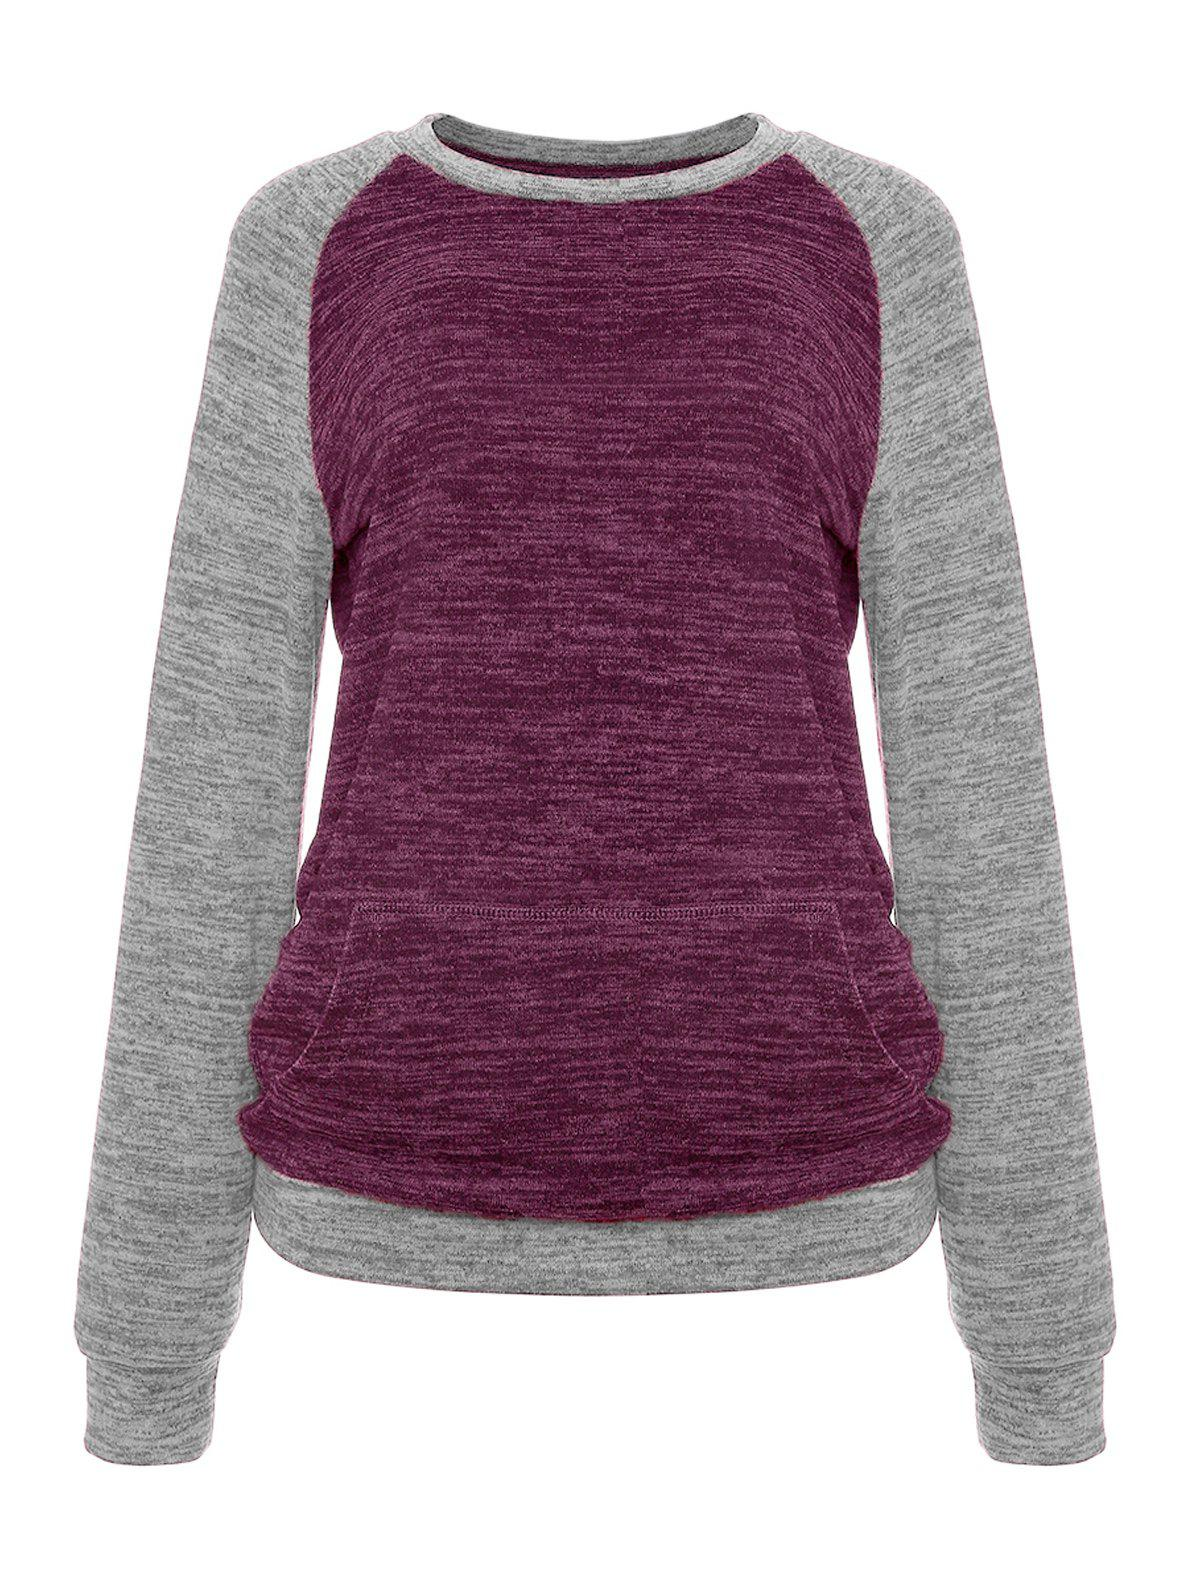 Hot Constrasting Color Patch Pocket Sweater Knitwear T-Shirts